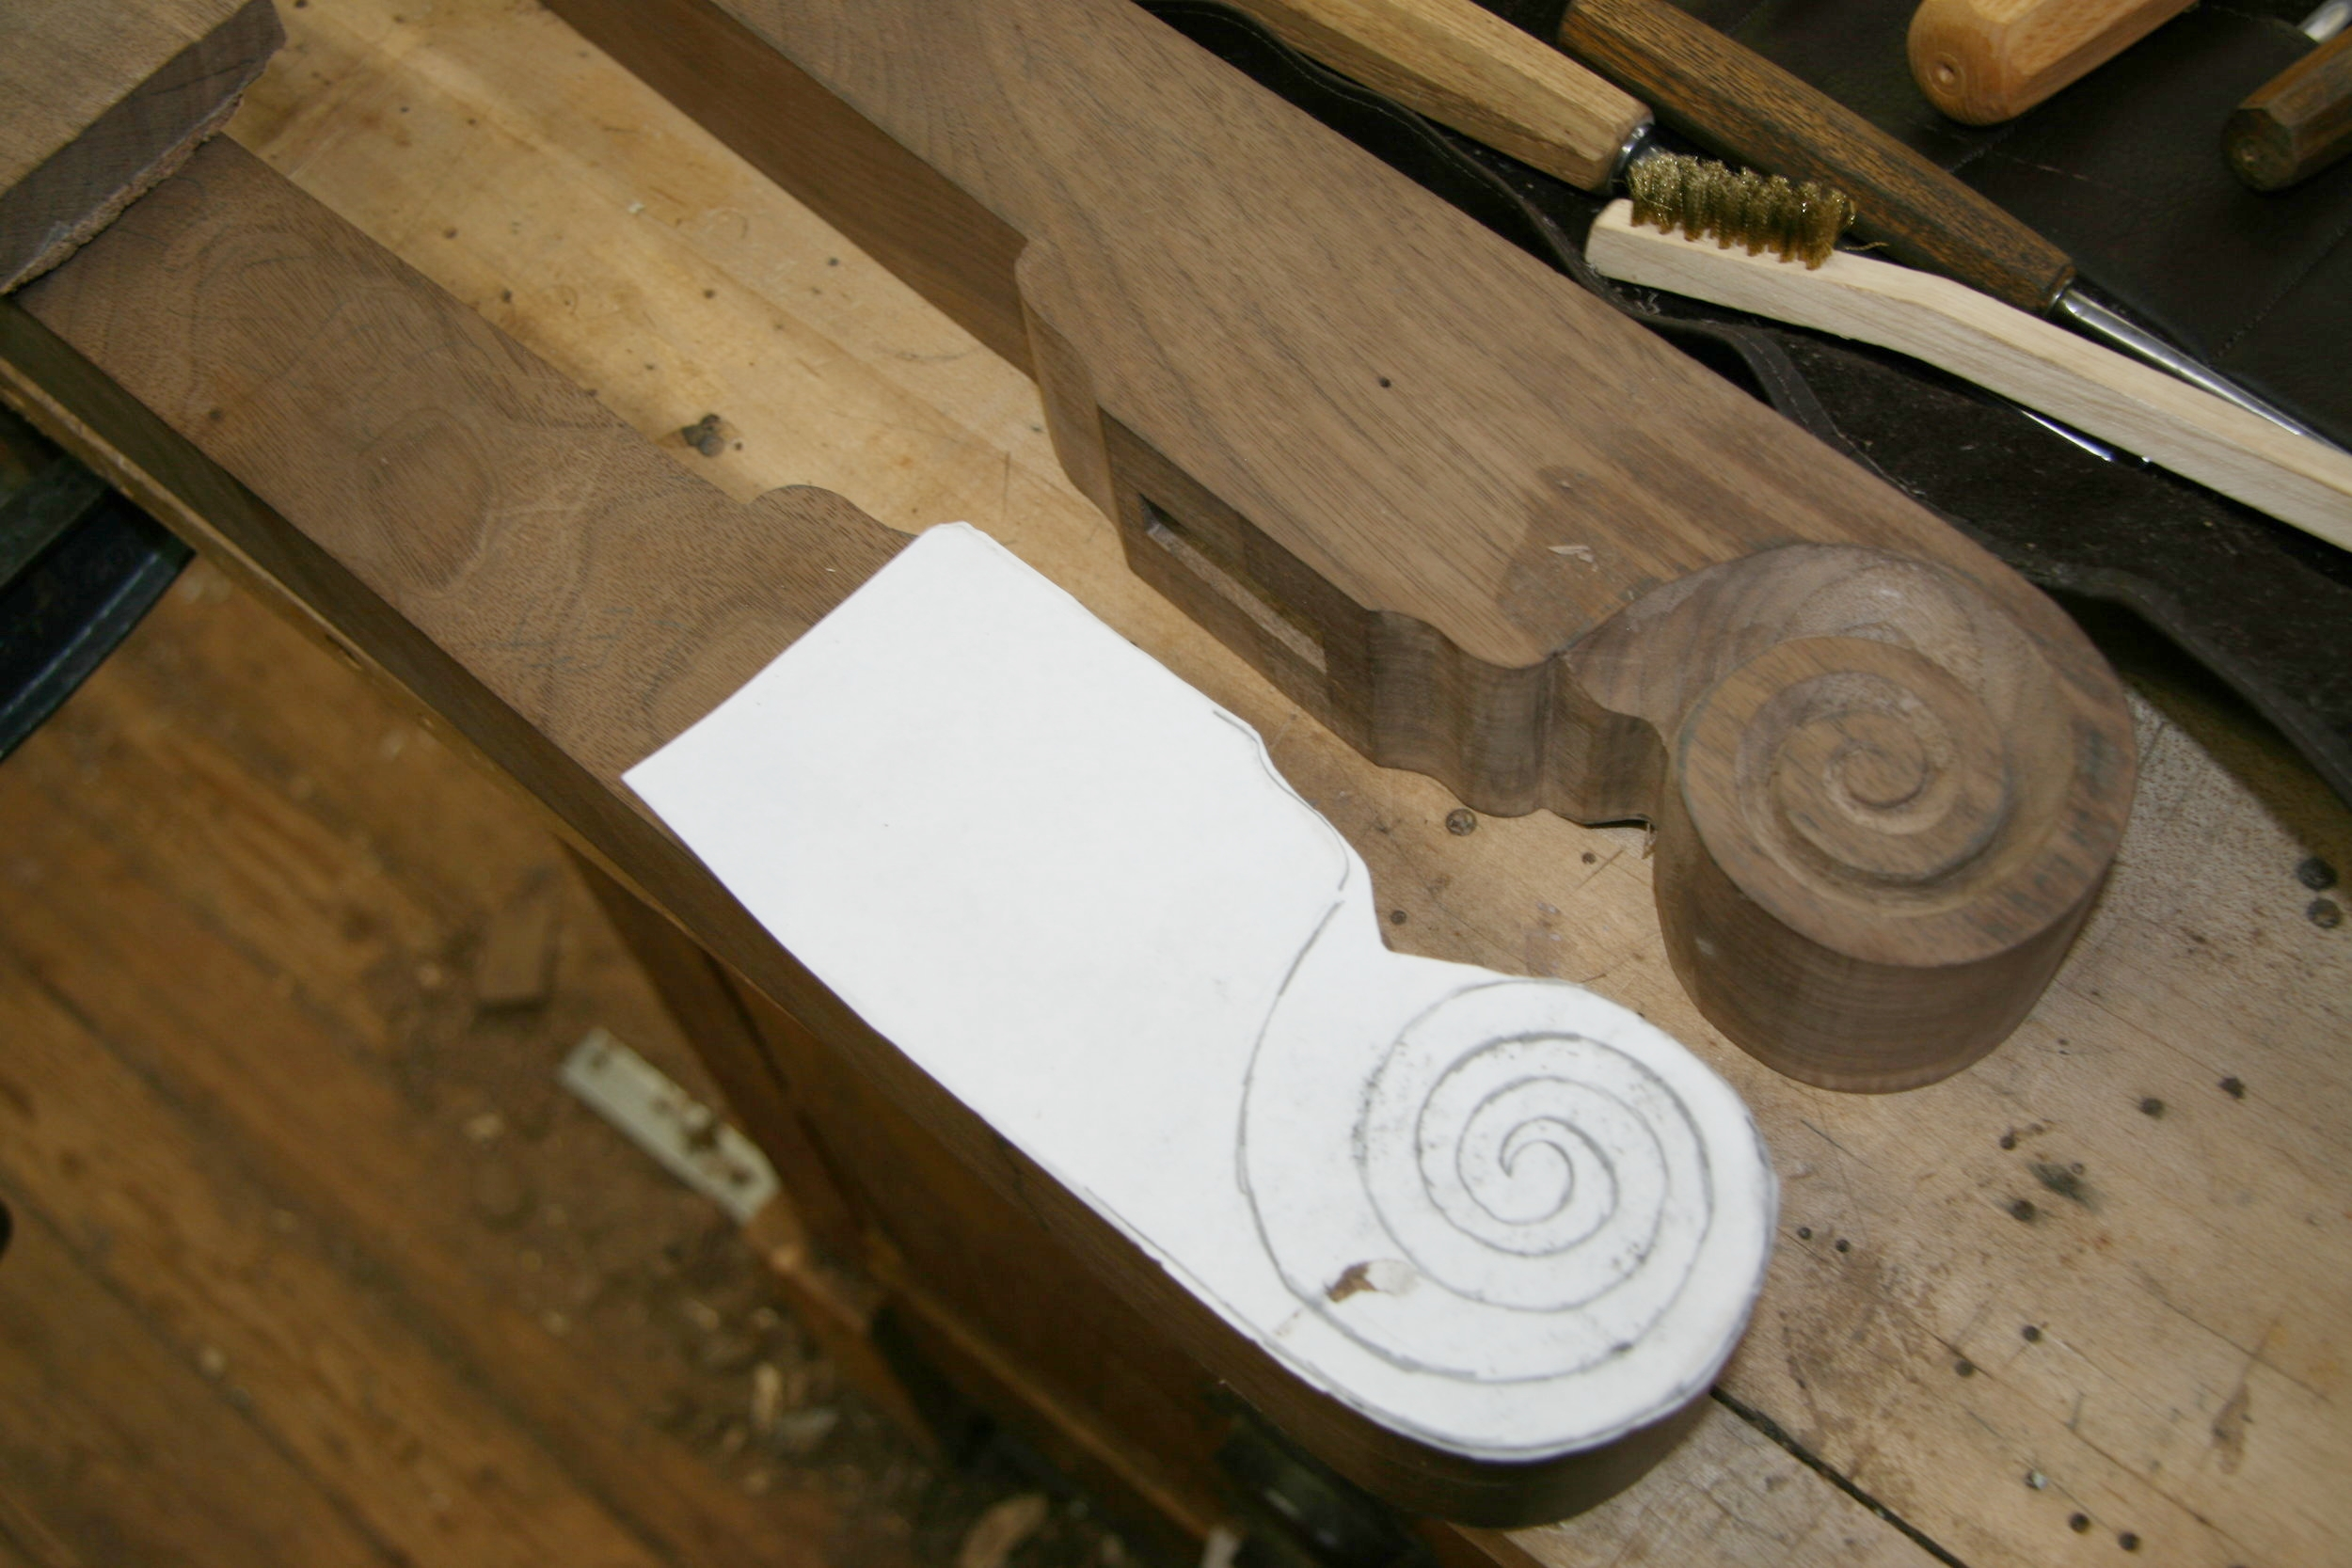 VOLUTE PATTERN for the arms